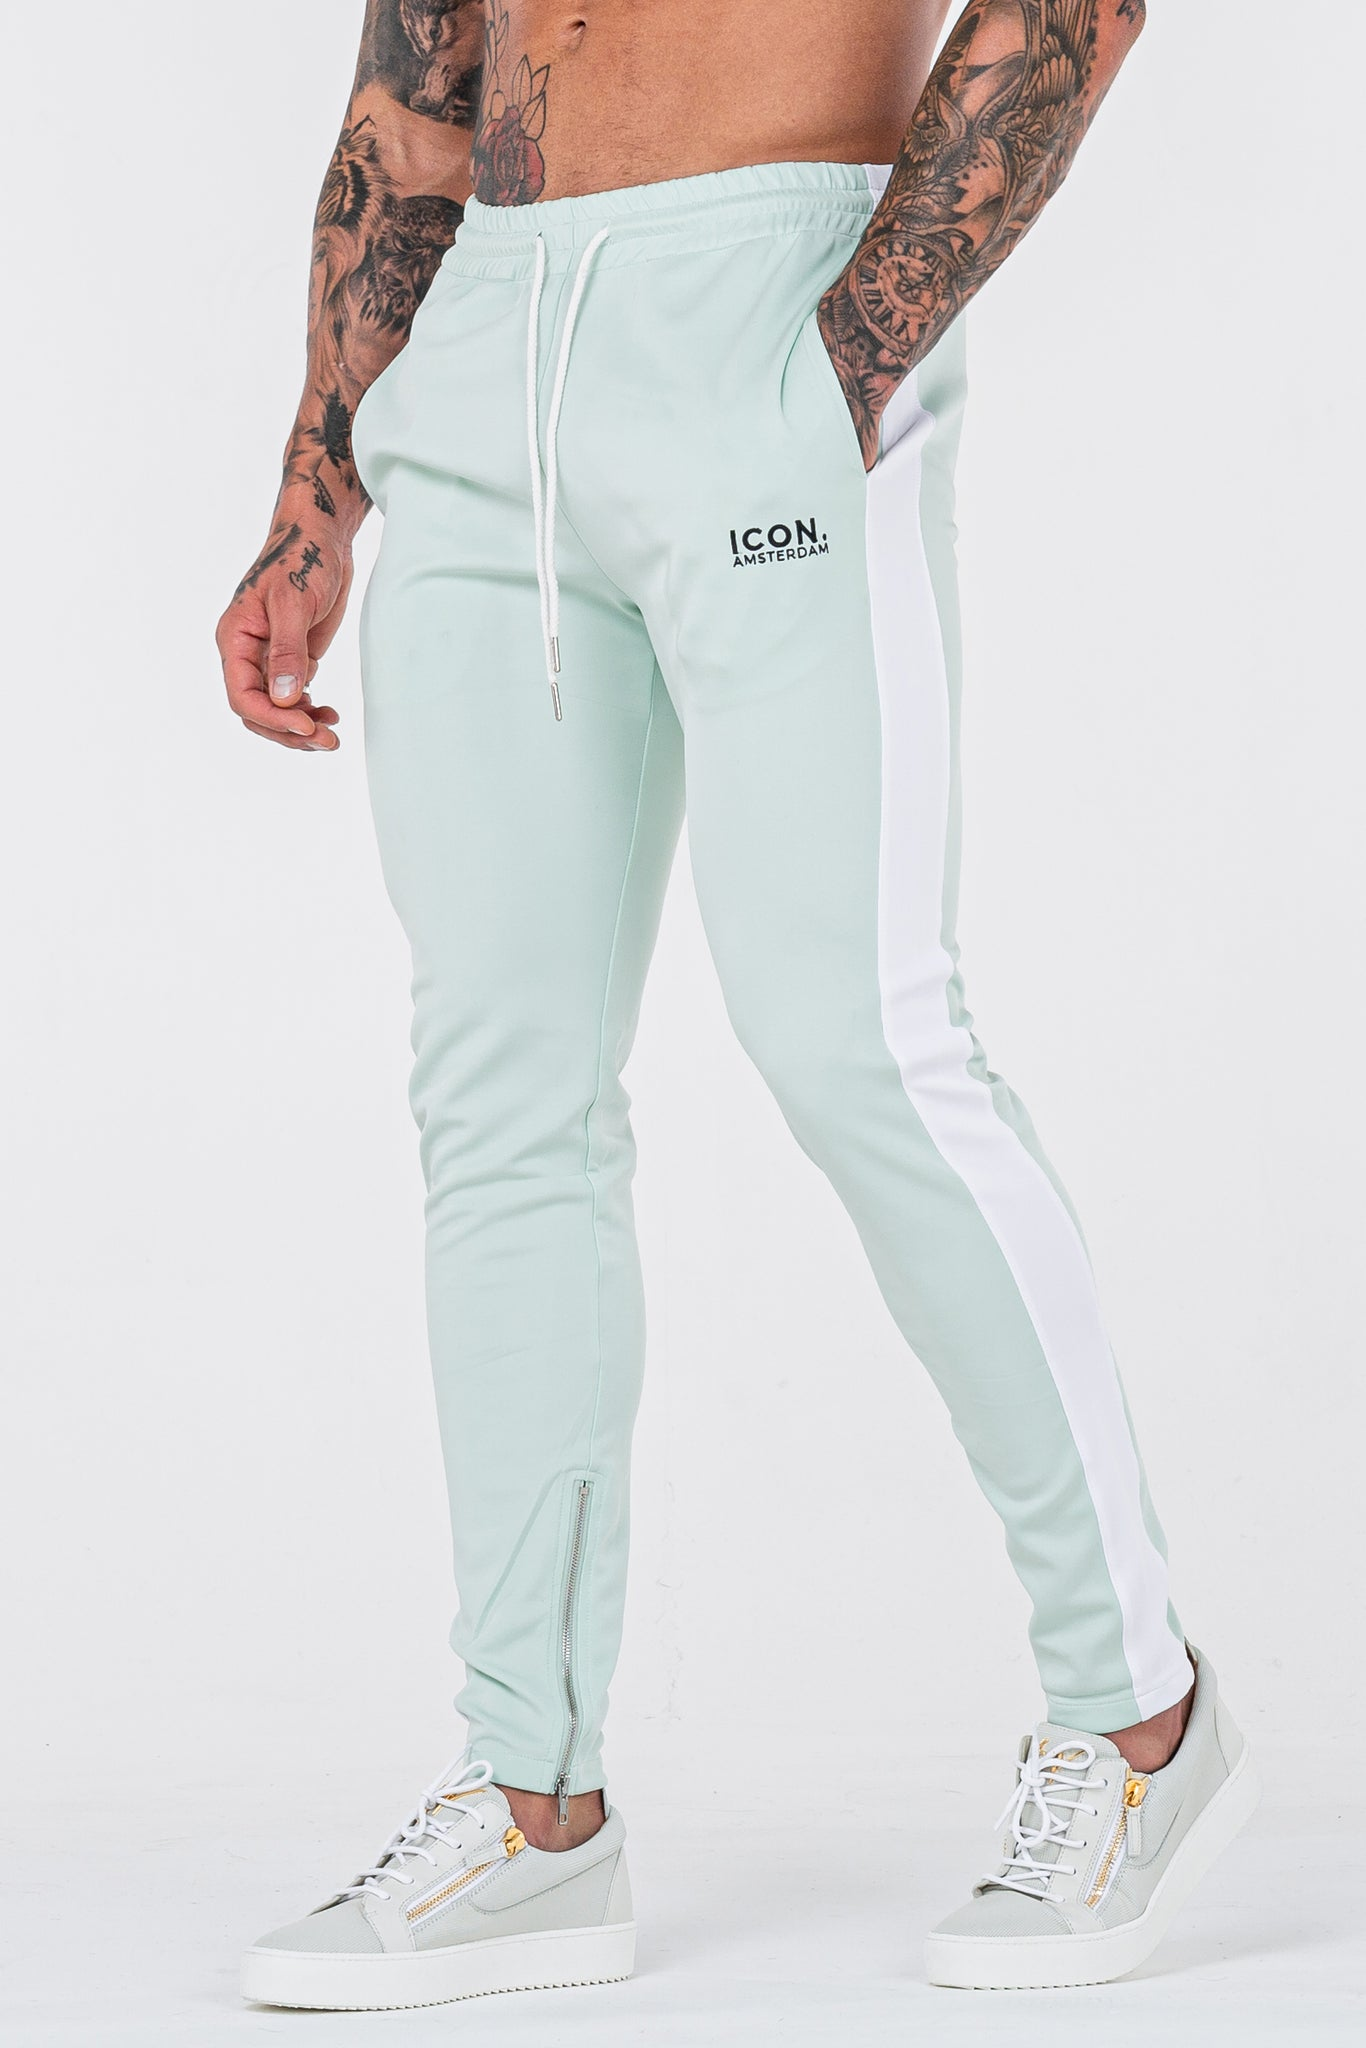 THE ICONIC TRACK PANTS - MINT GREEN - ICON. AMSTERDAM